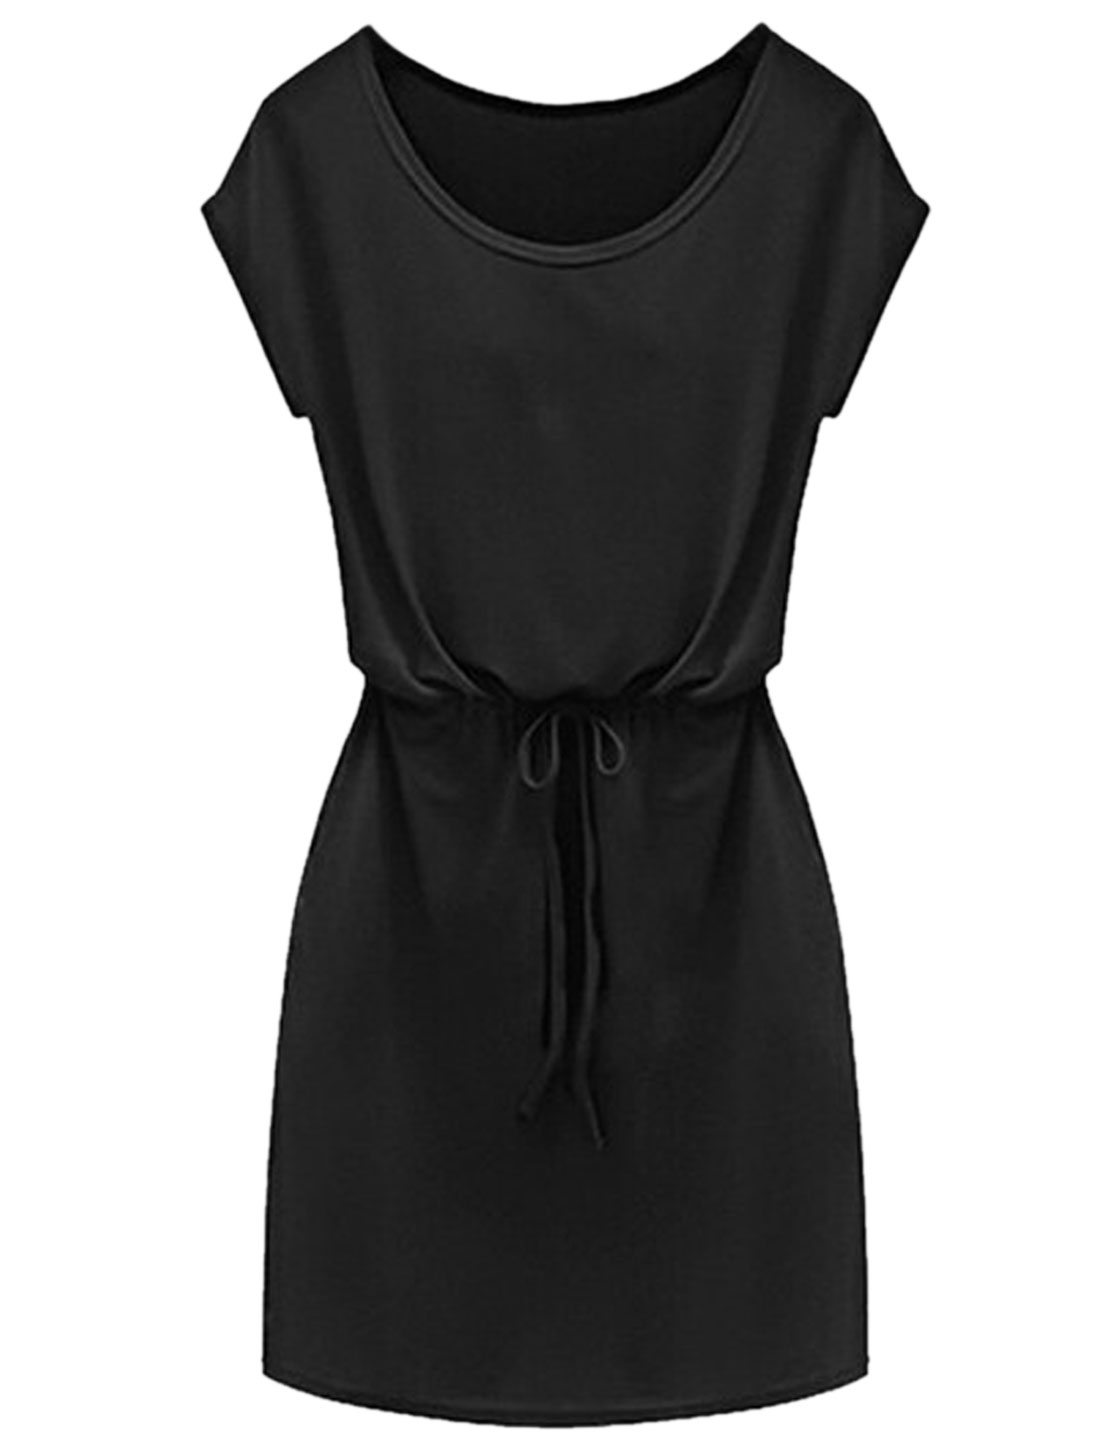 Women Short Sleeves Two Seam Pockets Unlined Casual Dress Black M